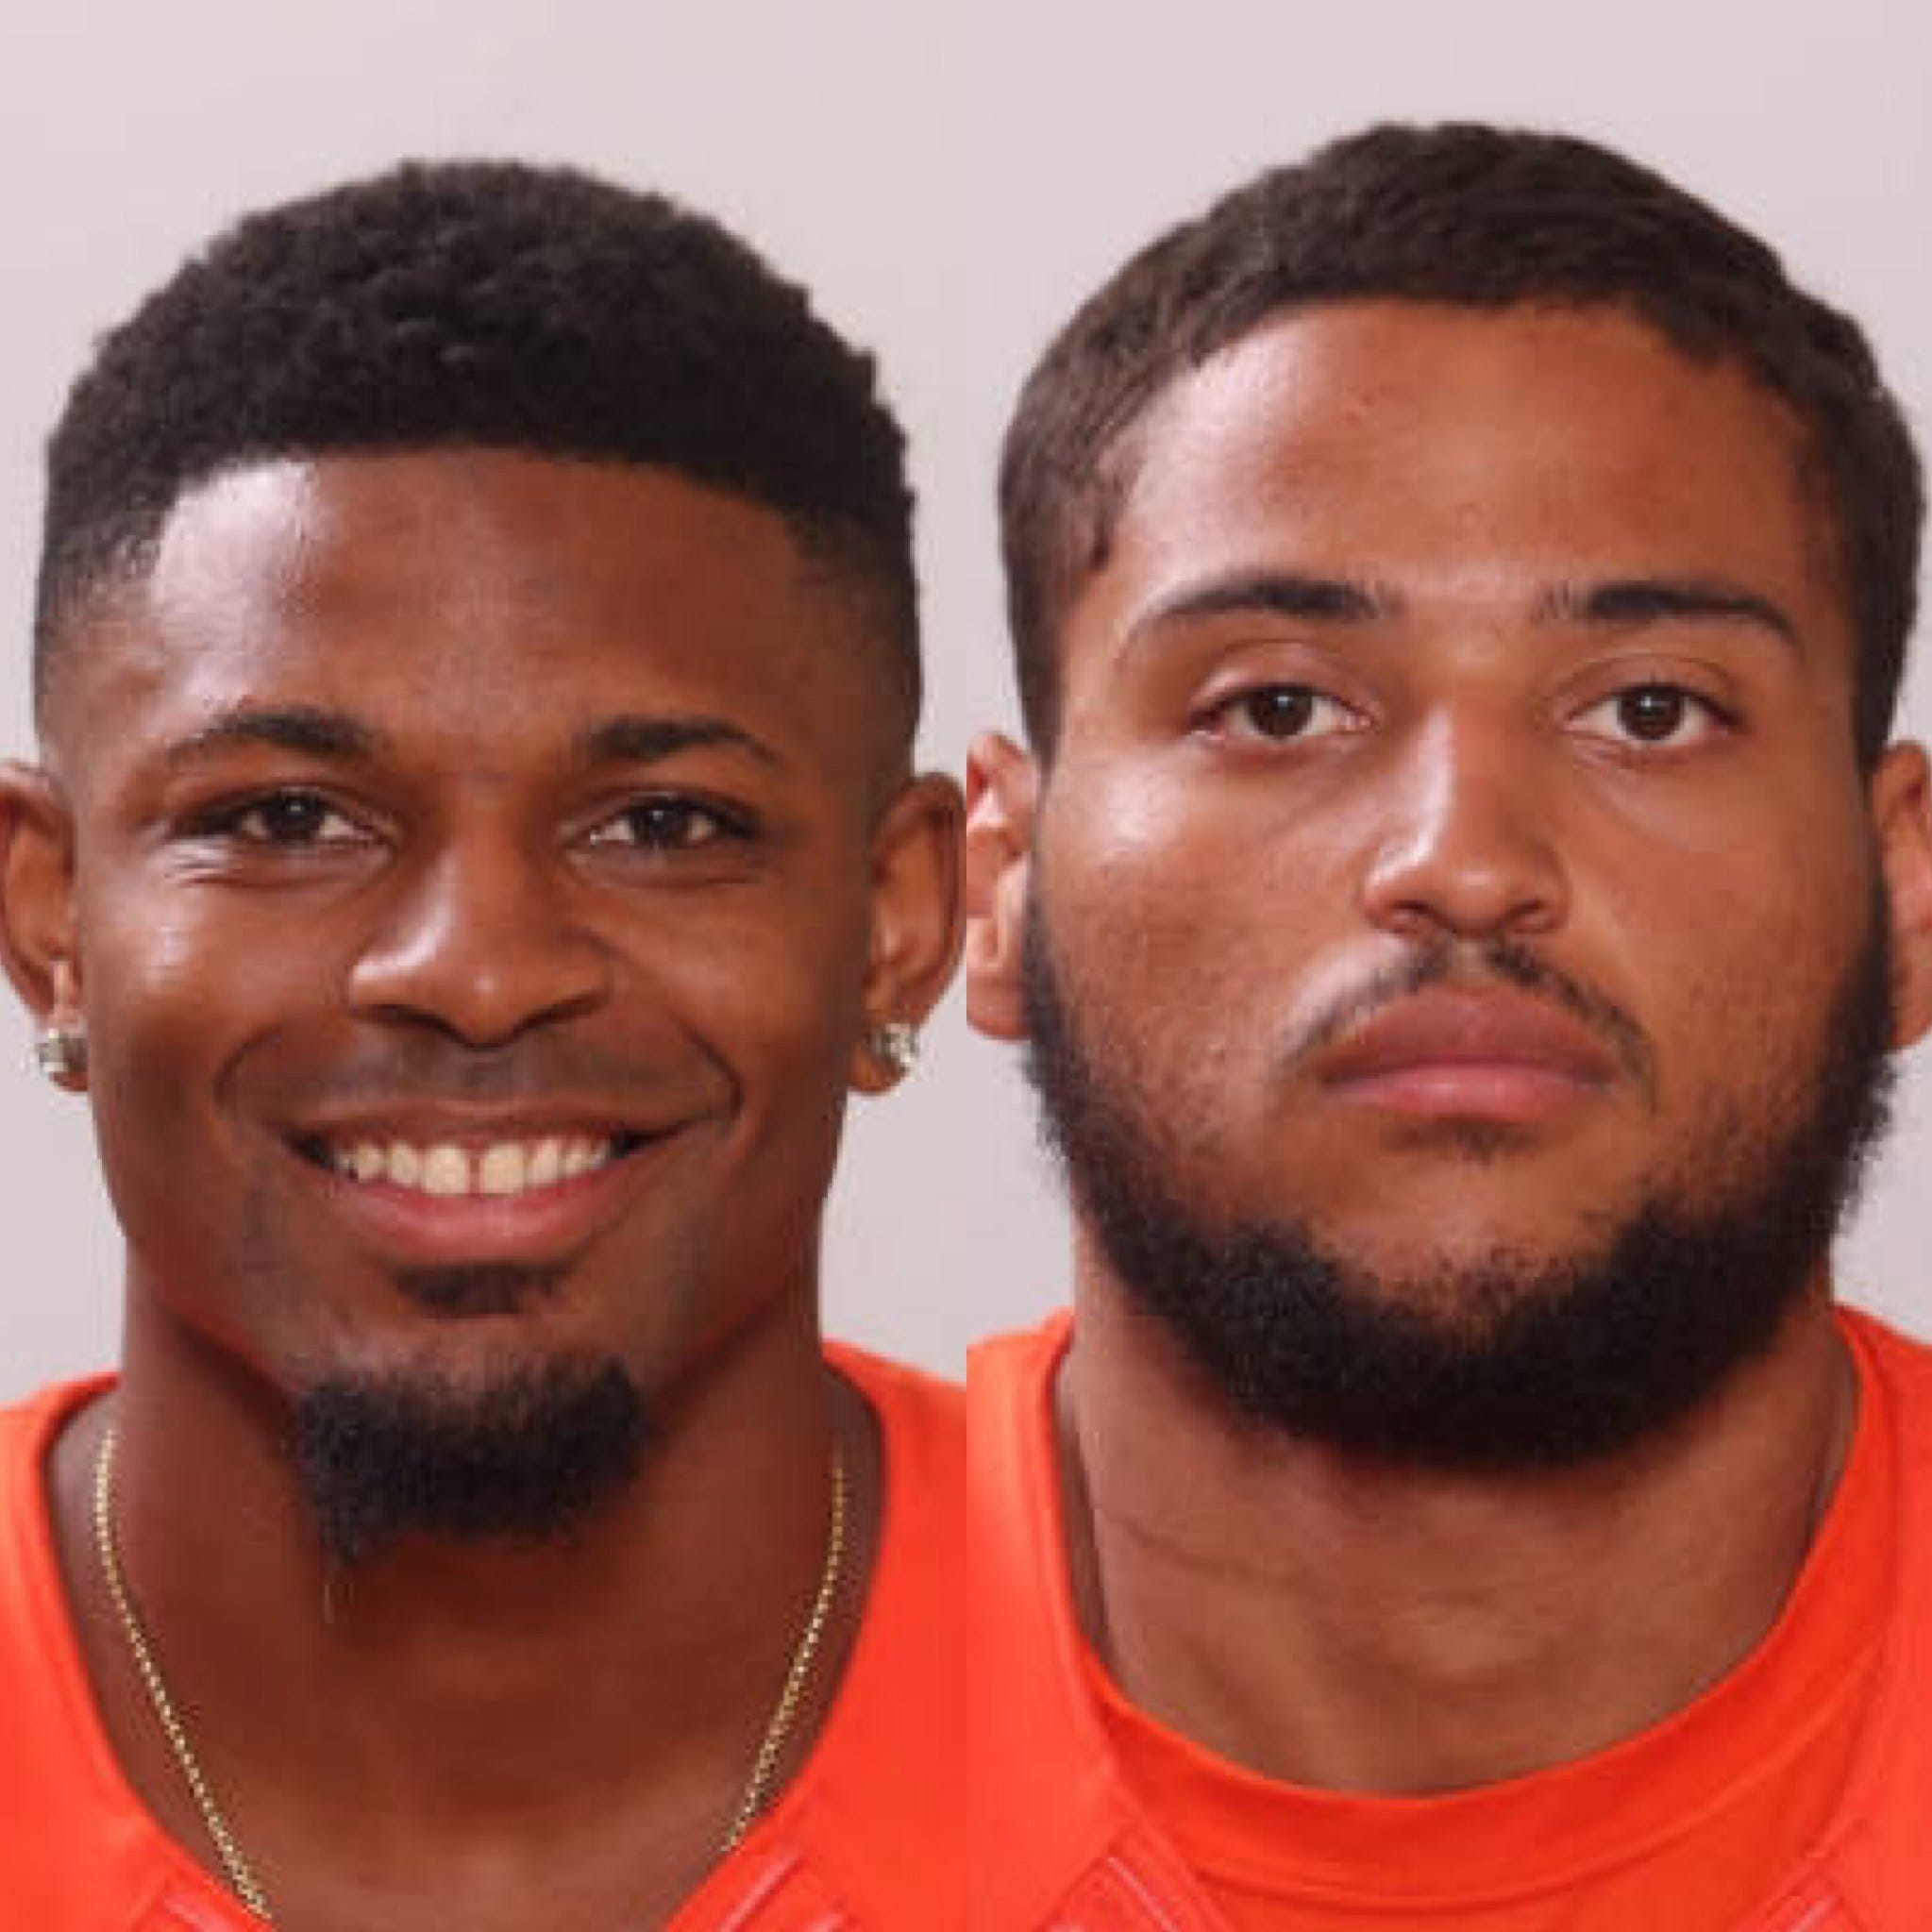 FAMU wide receiver Azende Rey (left) and offensive lineman Zach Saffold hail from Niceville and Lynn Haven. Their towns were ravaged by Hurricane Michael.